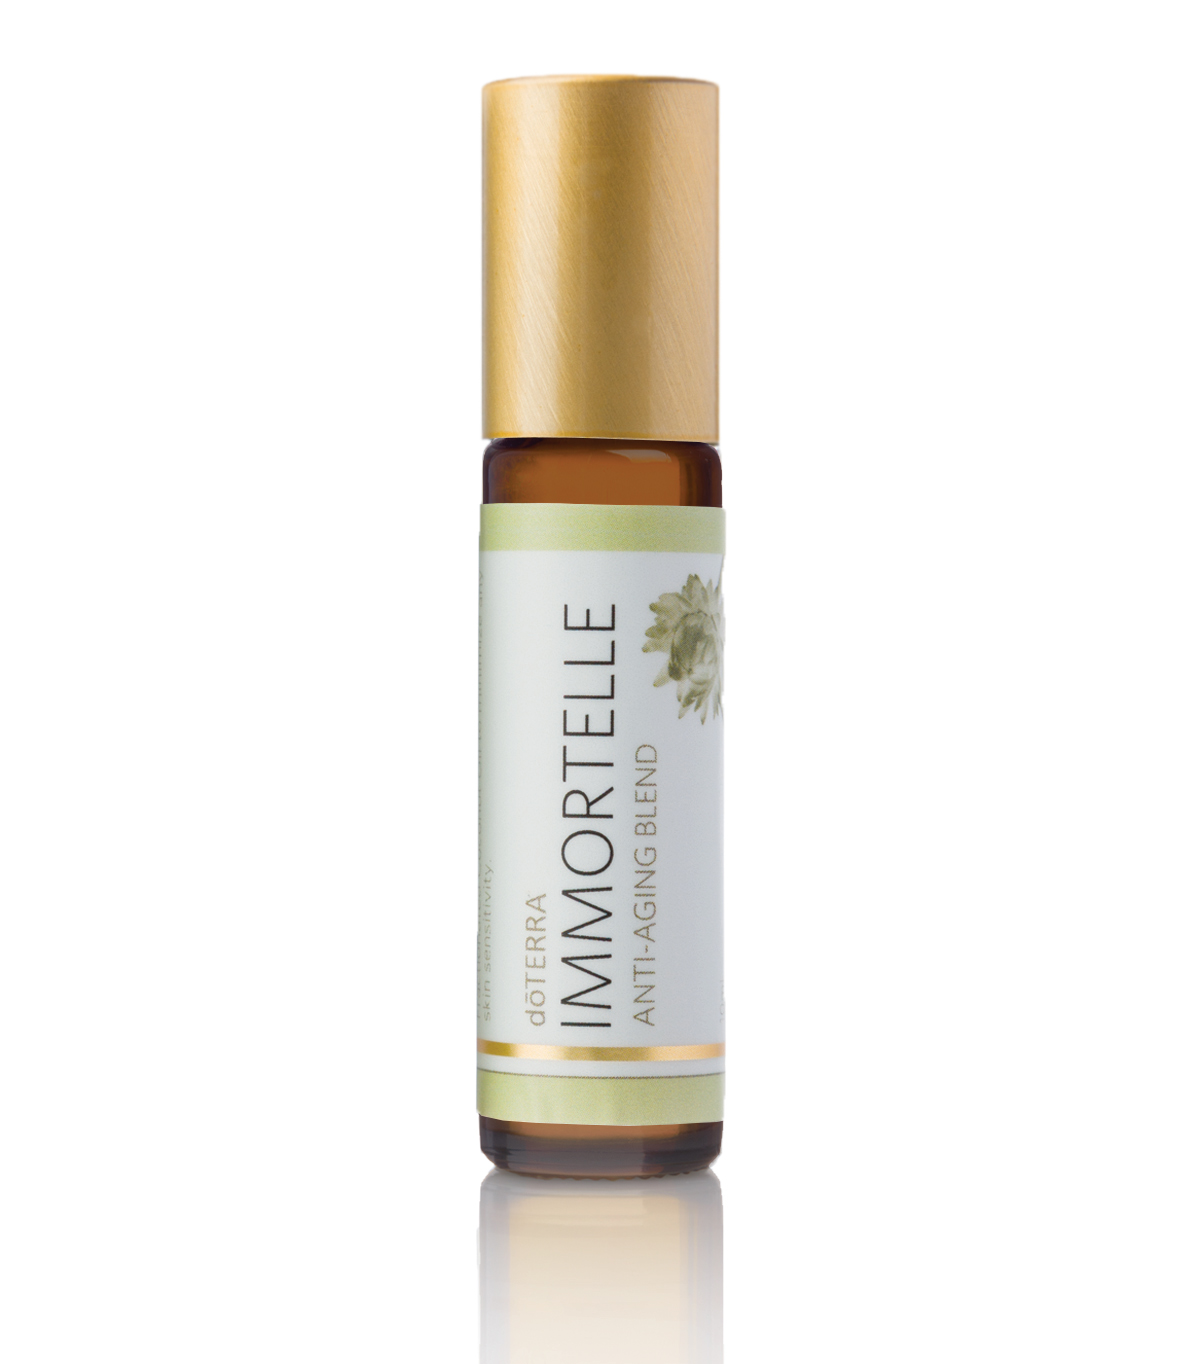 Doterra Olie Doterra Immortel Roll On Anti Aging Blend 10ml De